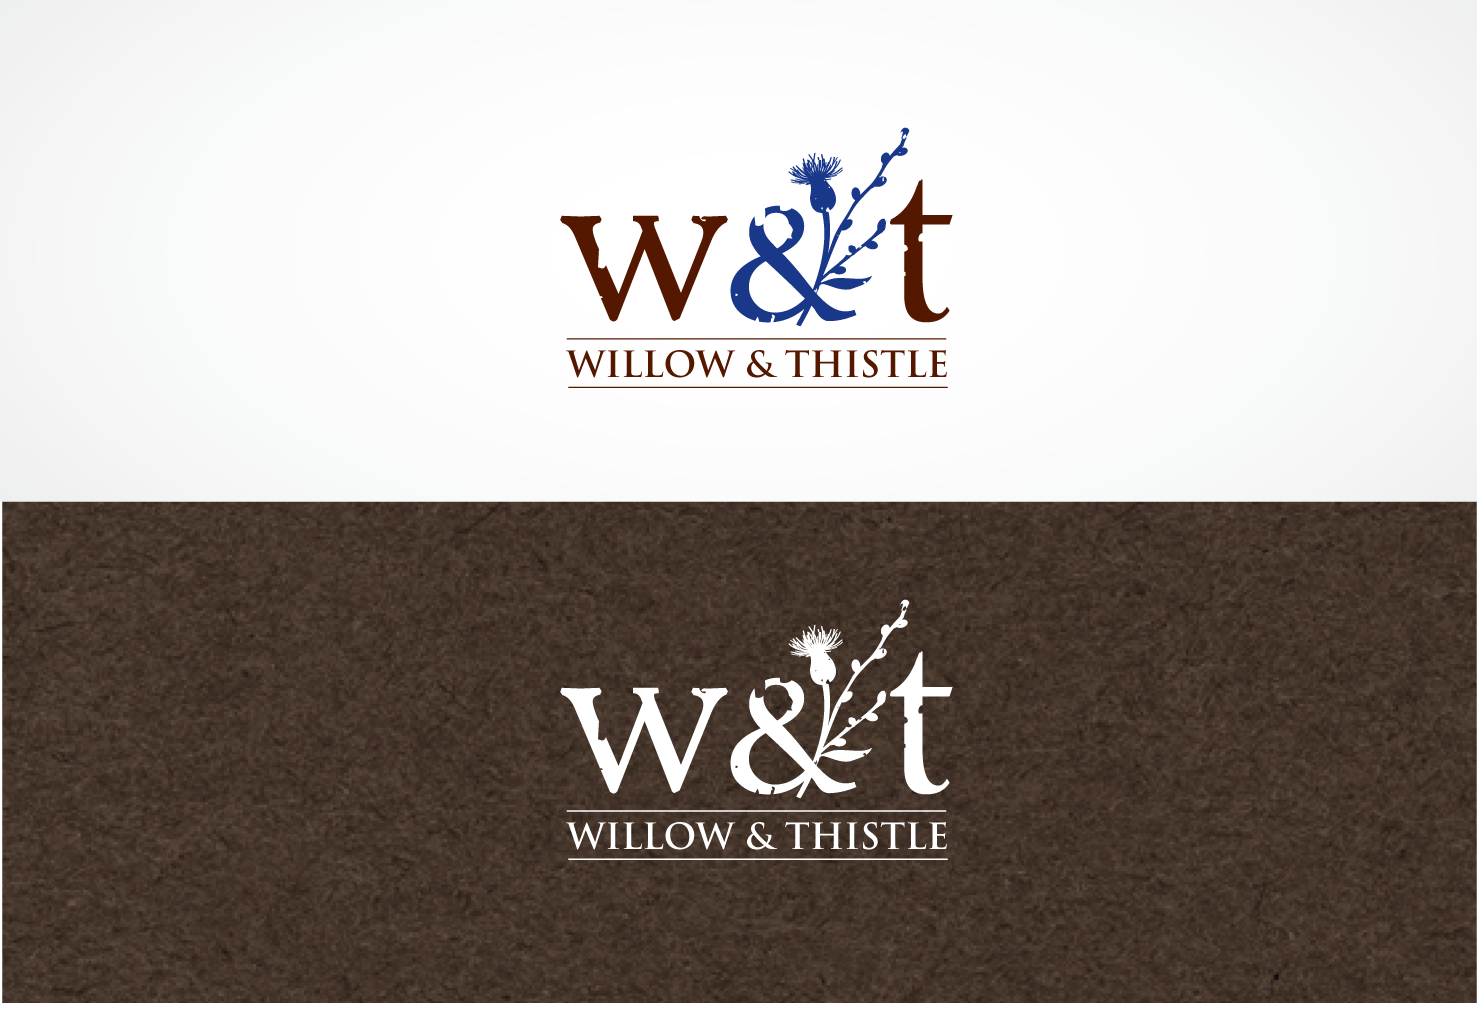 New logo wanted for Willow & Thistle